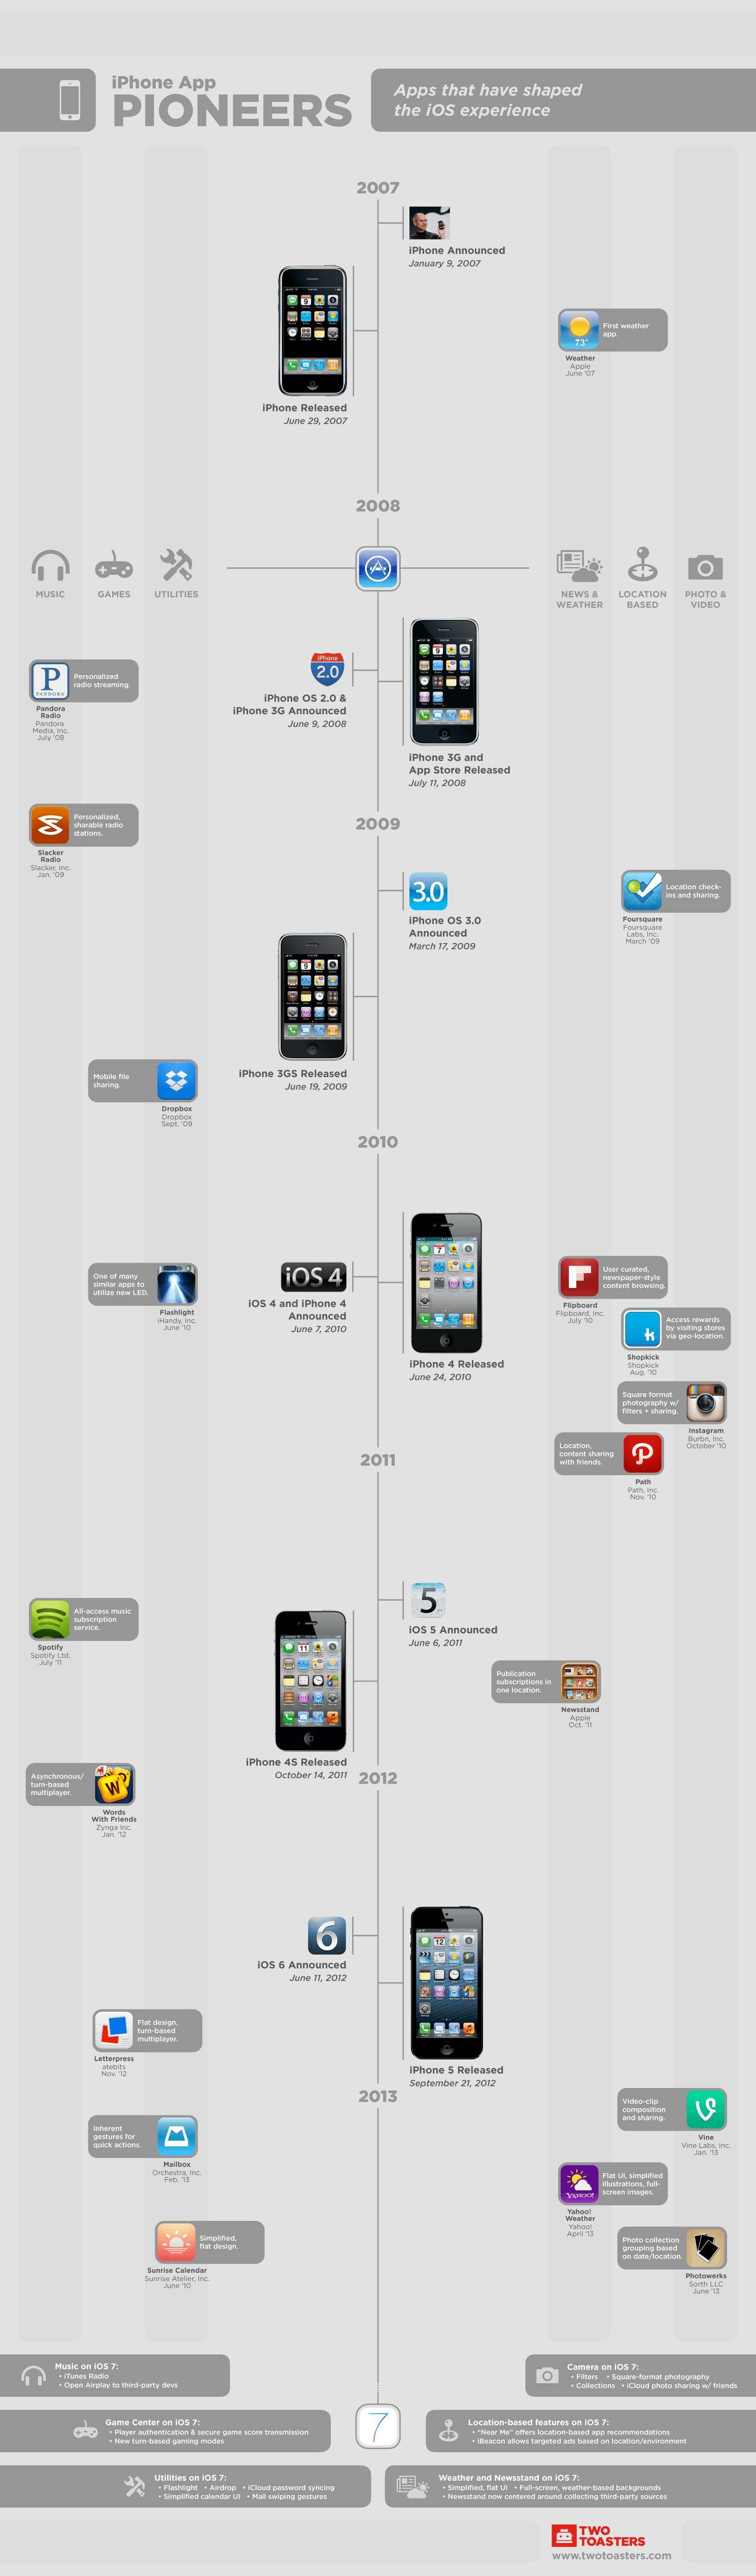 iPhone App Pioneers: Apps That Have Shaped the iOS Experience